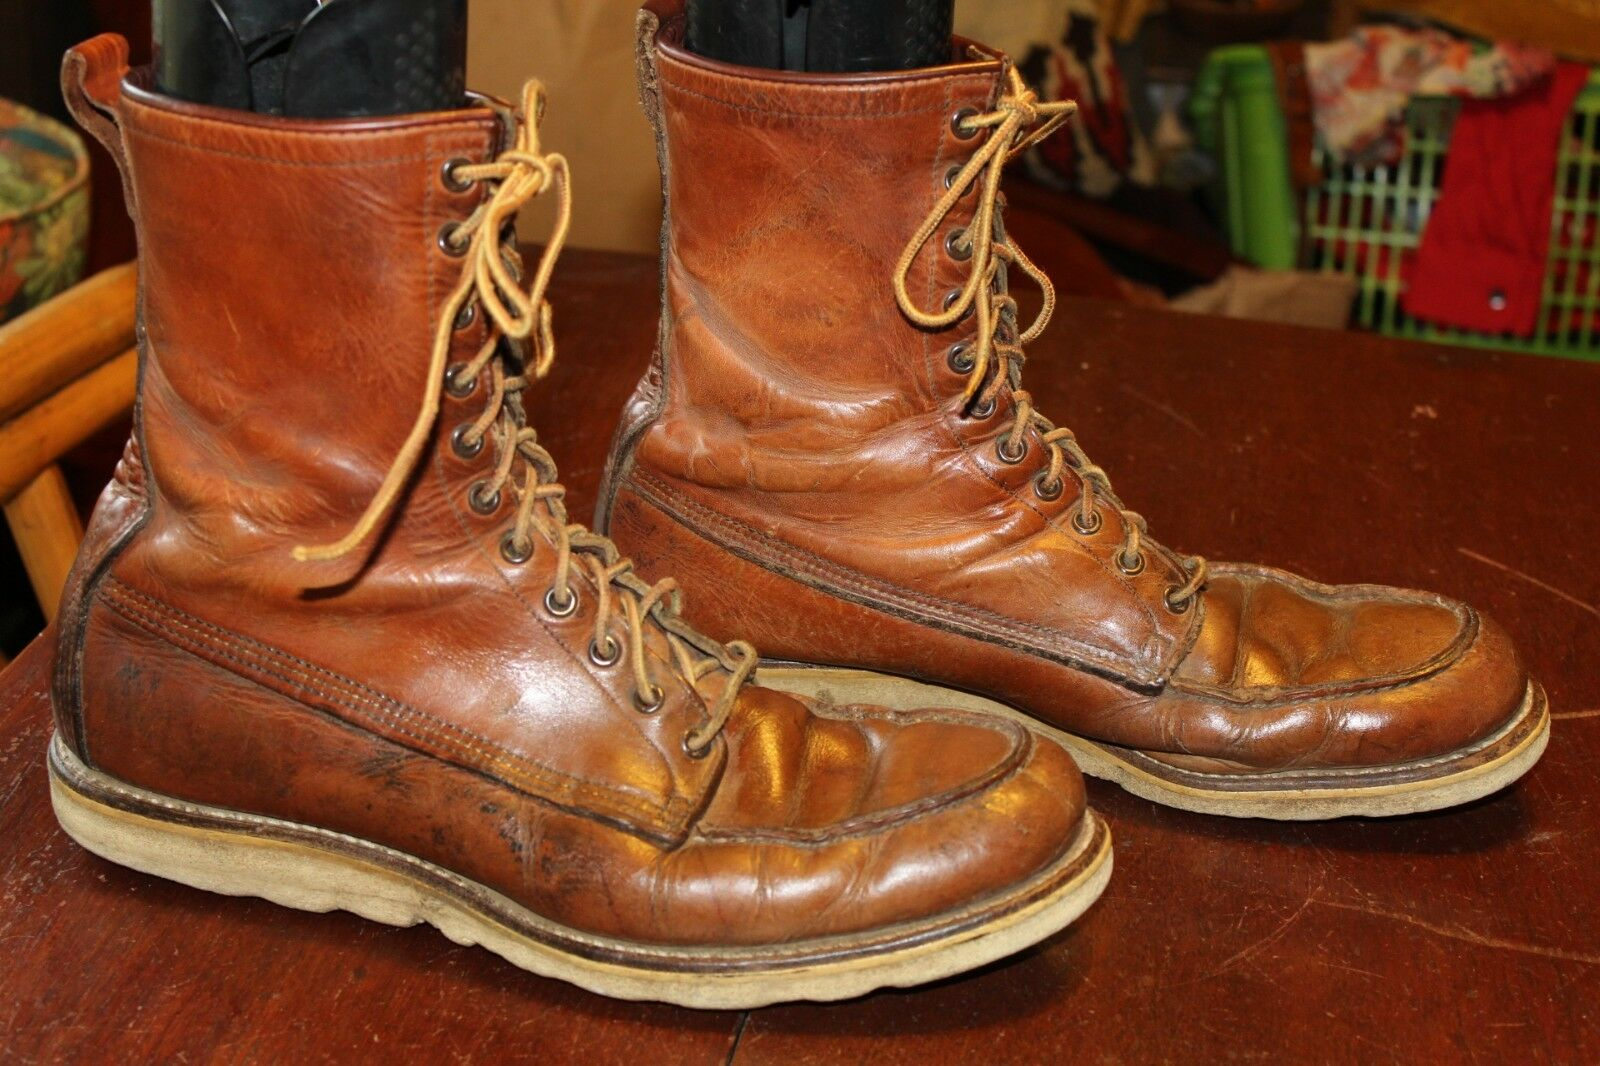 VINTAGE 60s ROSSO WING IRISH SETTER CREPE BOOTS SOLE WORK BOOTS CREPE 13 1a0d3a